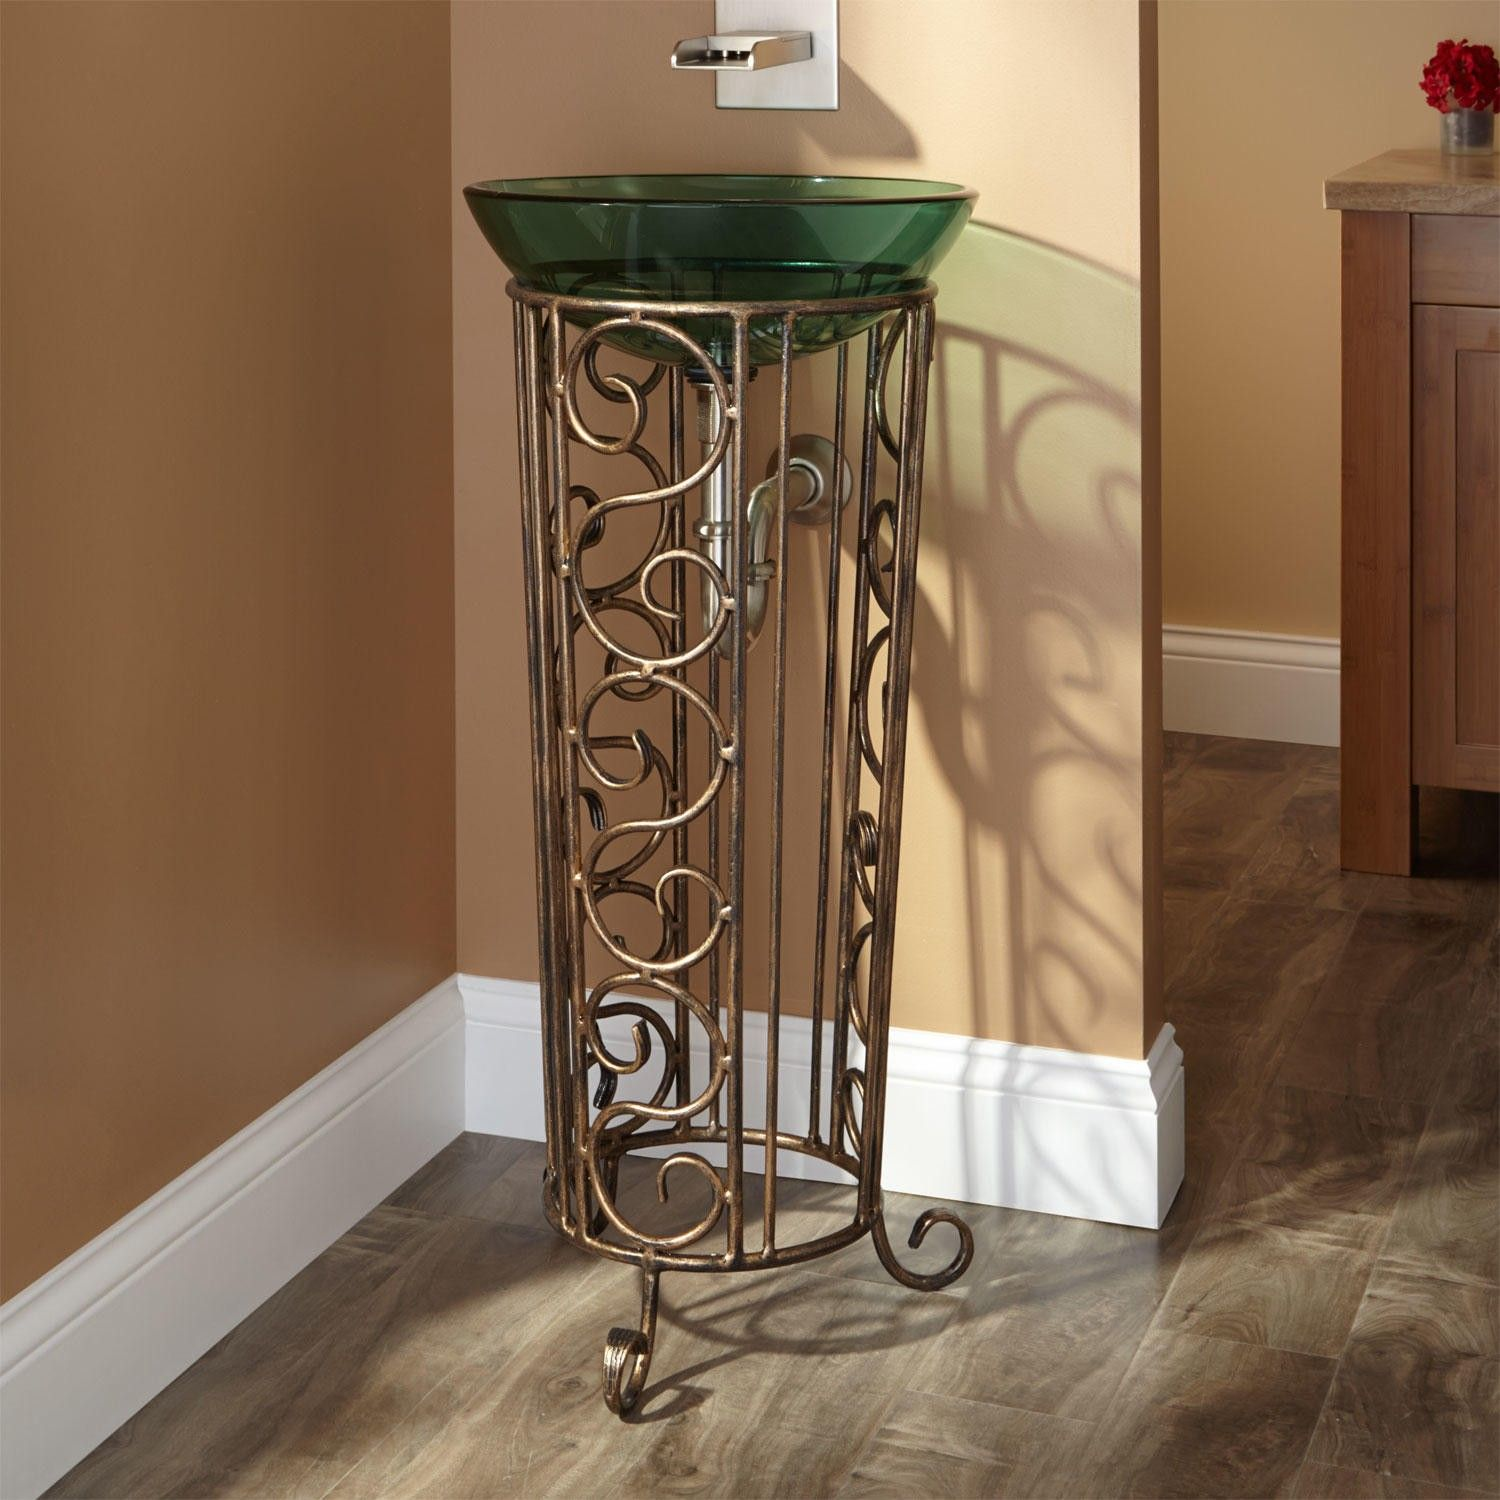 Rouleau Wrought Iron Vessel Sink Stand